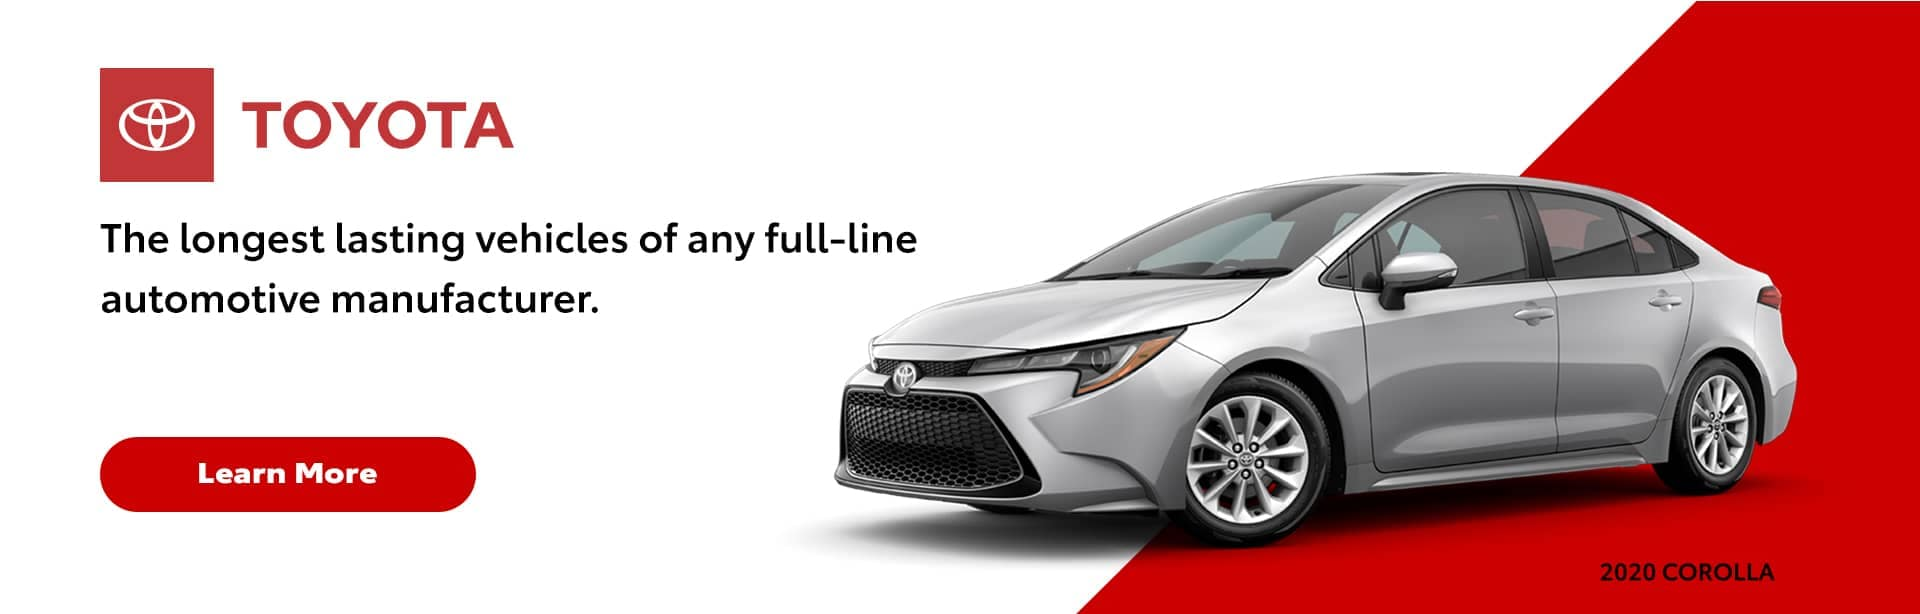 Why Toyota banner